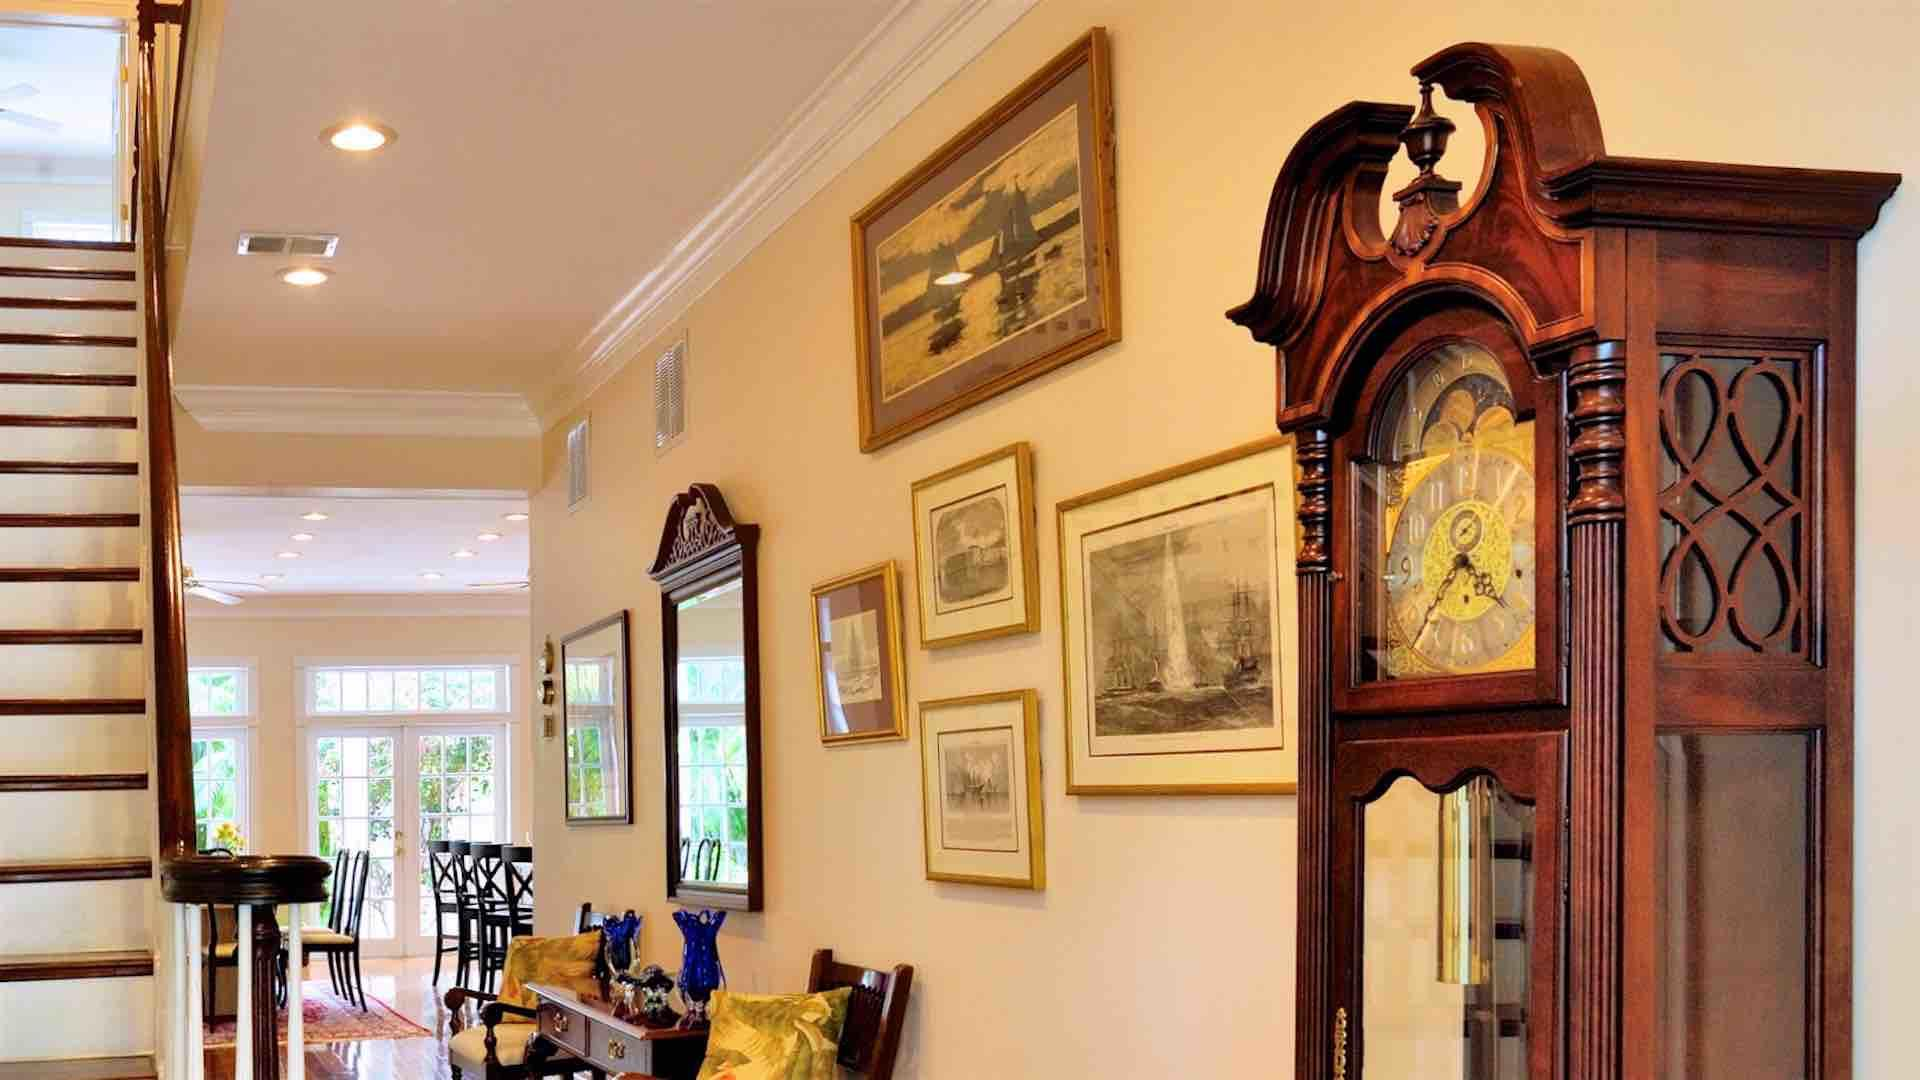 Intricate photos and artwork hang on the walls throughout the home...